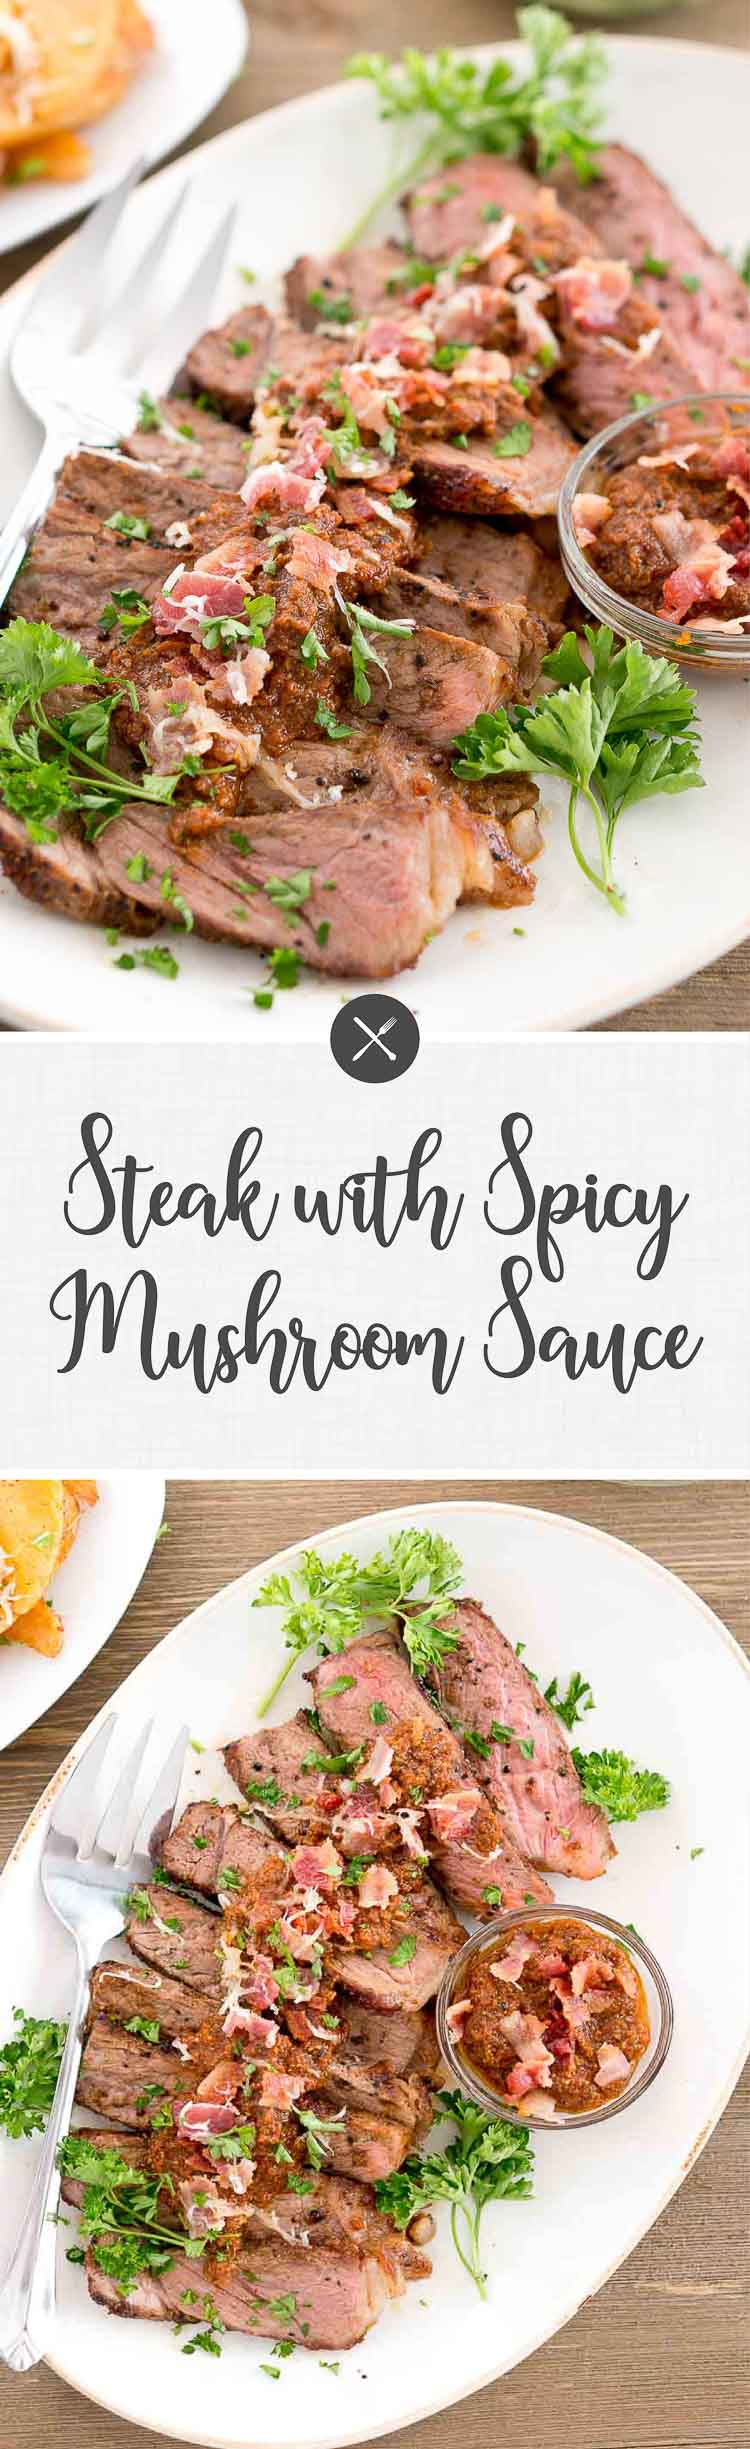 Steak with Spicy Mushroom Sauce is a great and easy recipe for midweek dinners. The mushroom sauce takes the steak to the next level.